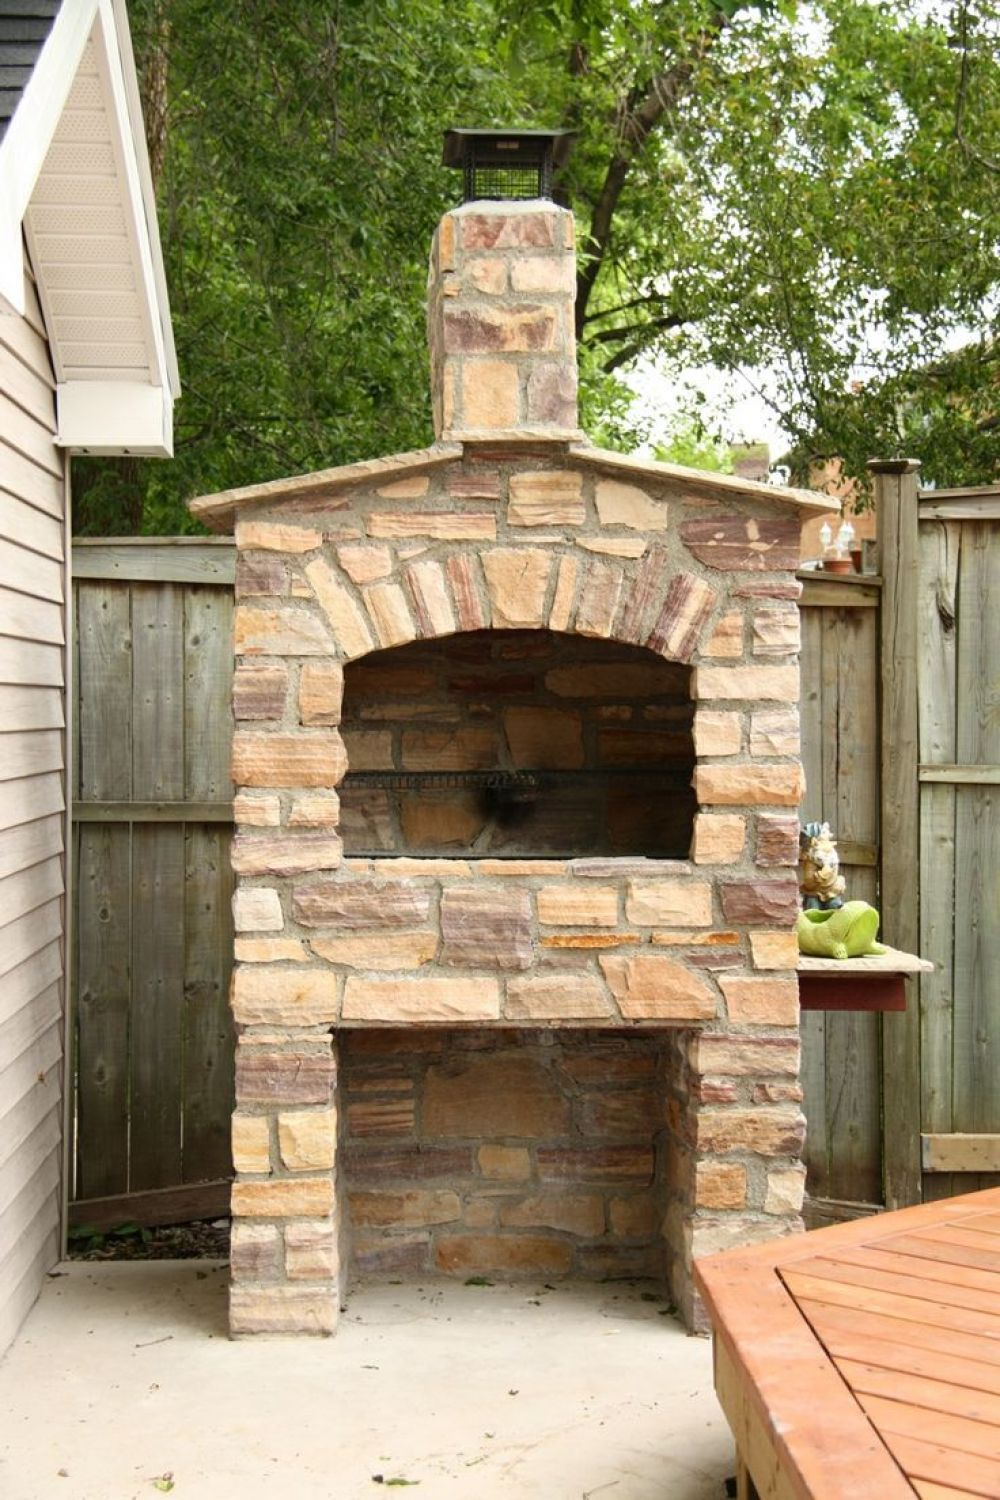 28 Best DIY Backyard Brick Barbecue Ideas 28 Best DIY Backyard